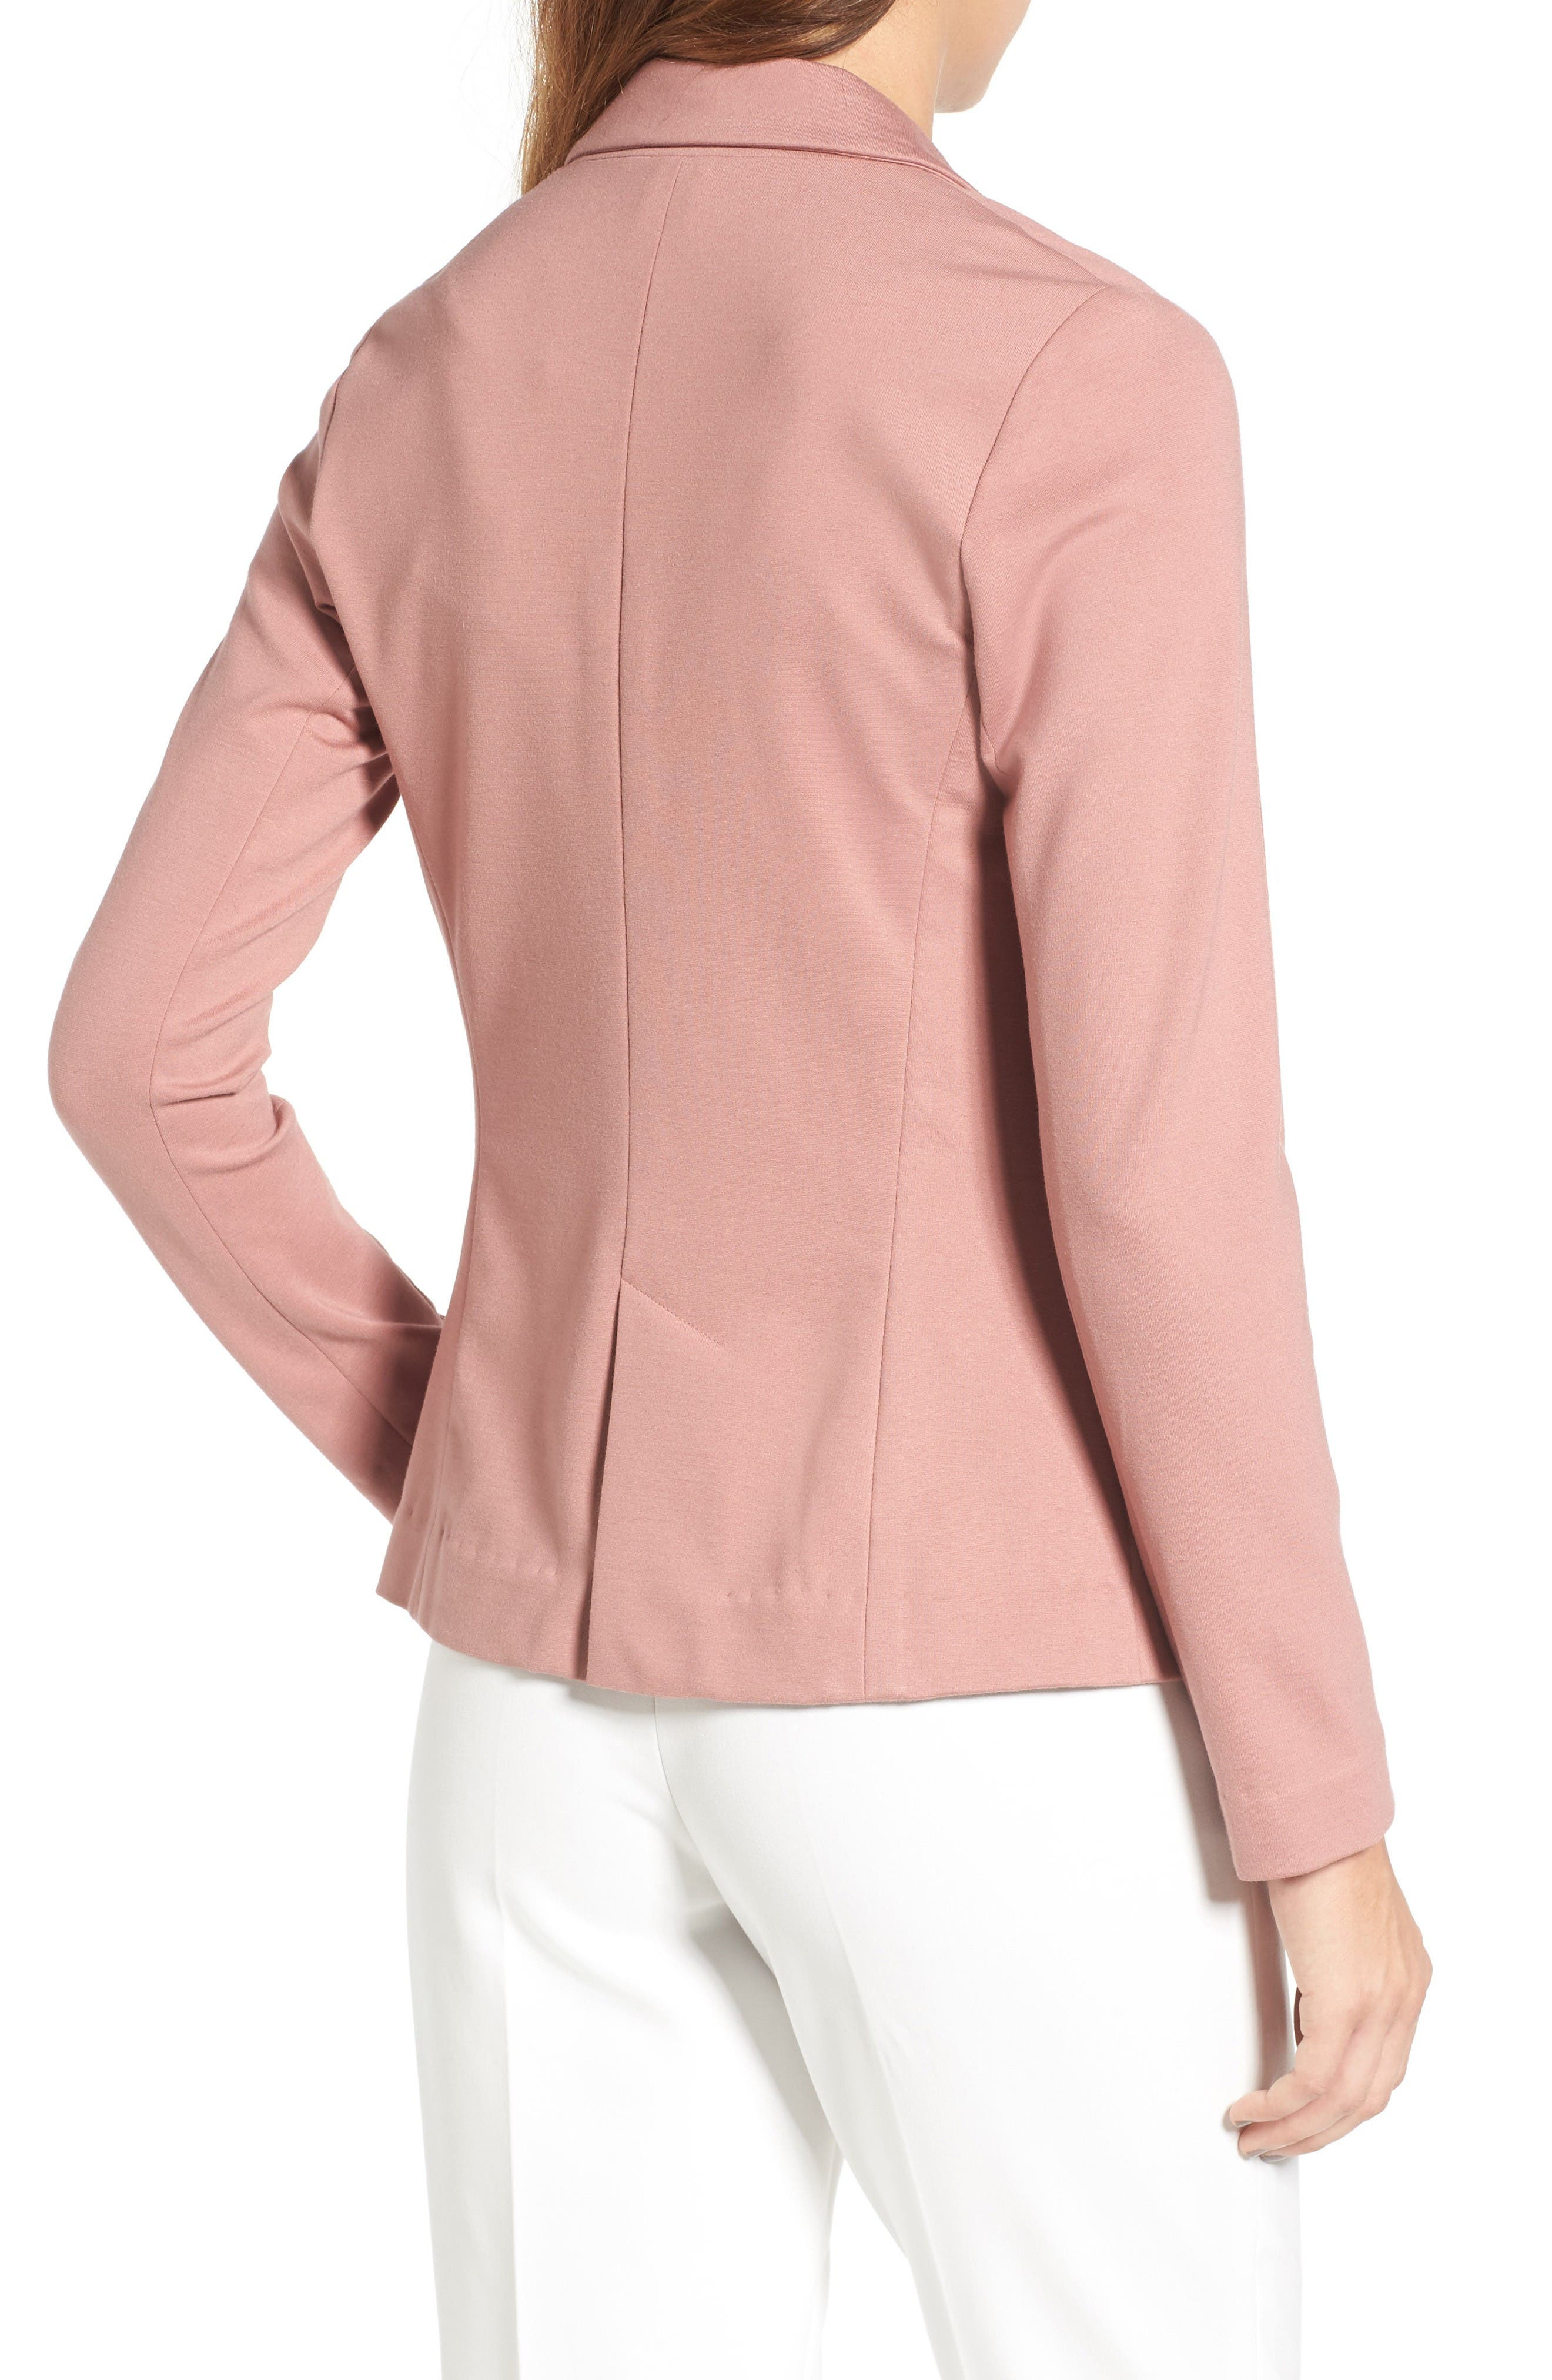 Coats & Jackets for Women | Nordstrom